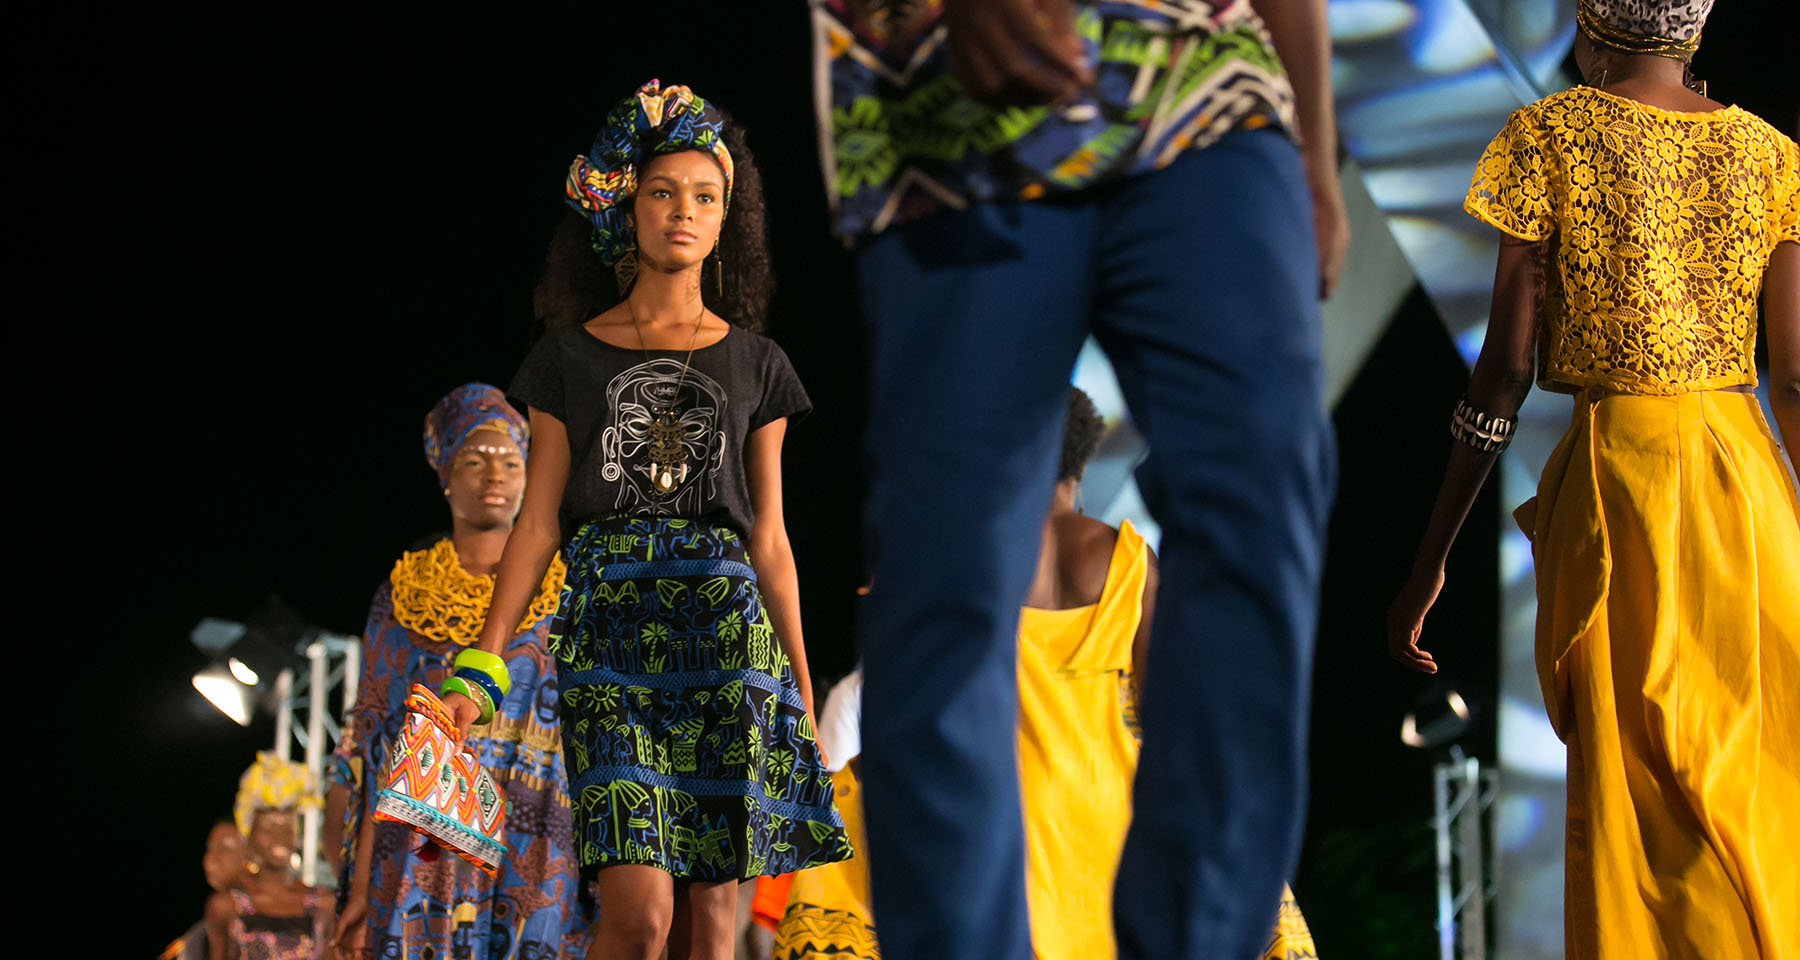 Correio event celebrates black culture in Brazil, increases digital engagement